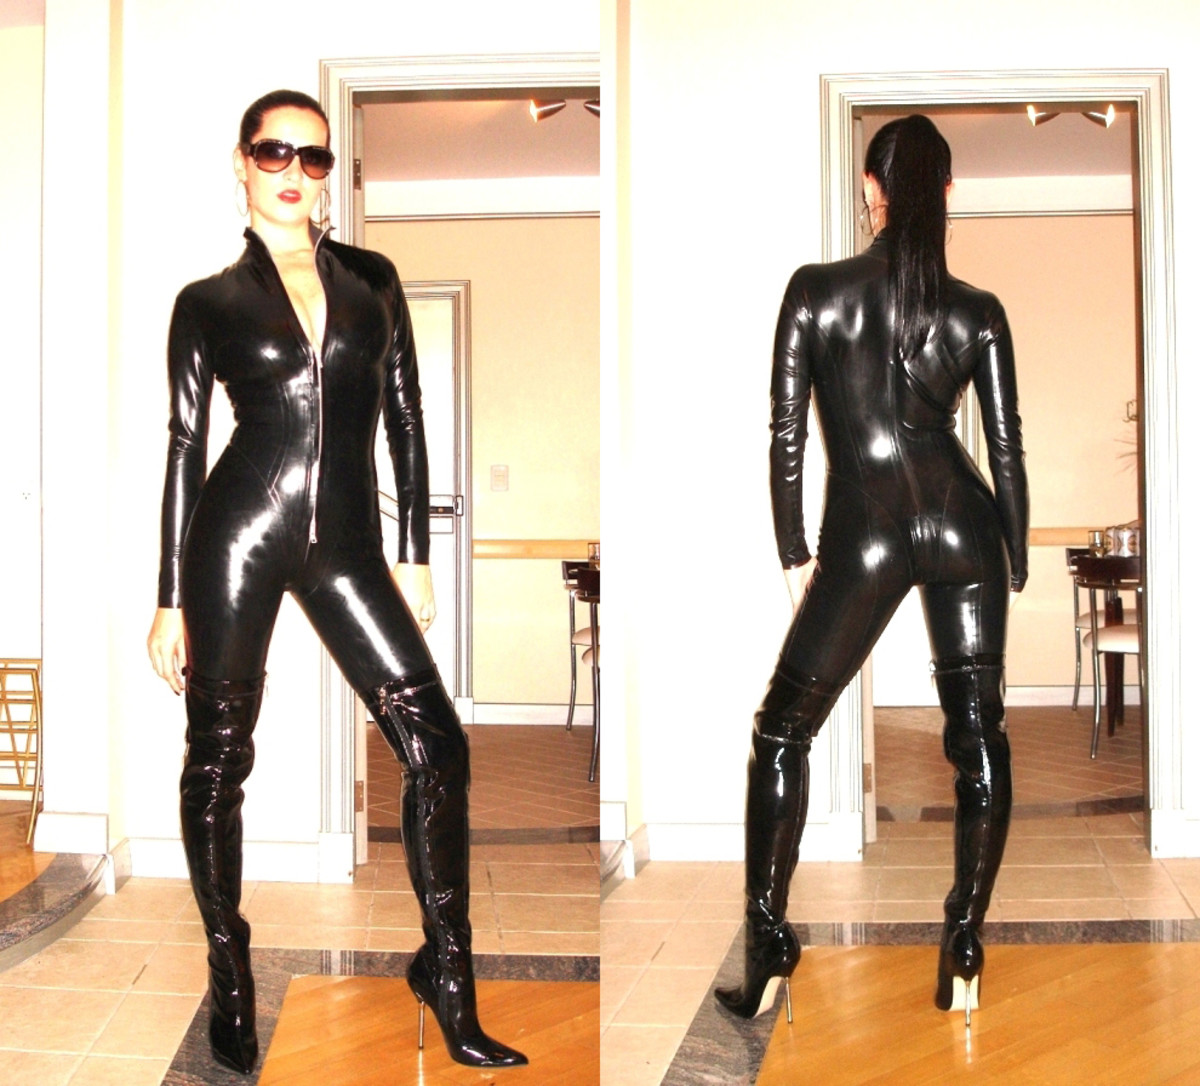 Image by Adrian Fuchs at: http://commons.wikimedia.org/wiki/File:Black_Latex_Catsuit_777.jpg